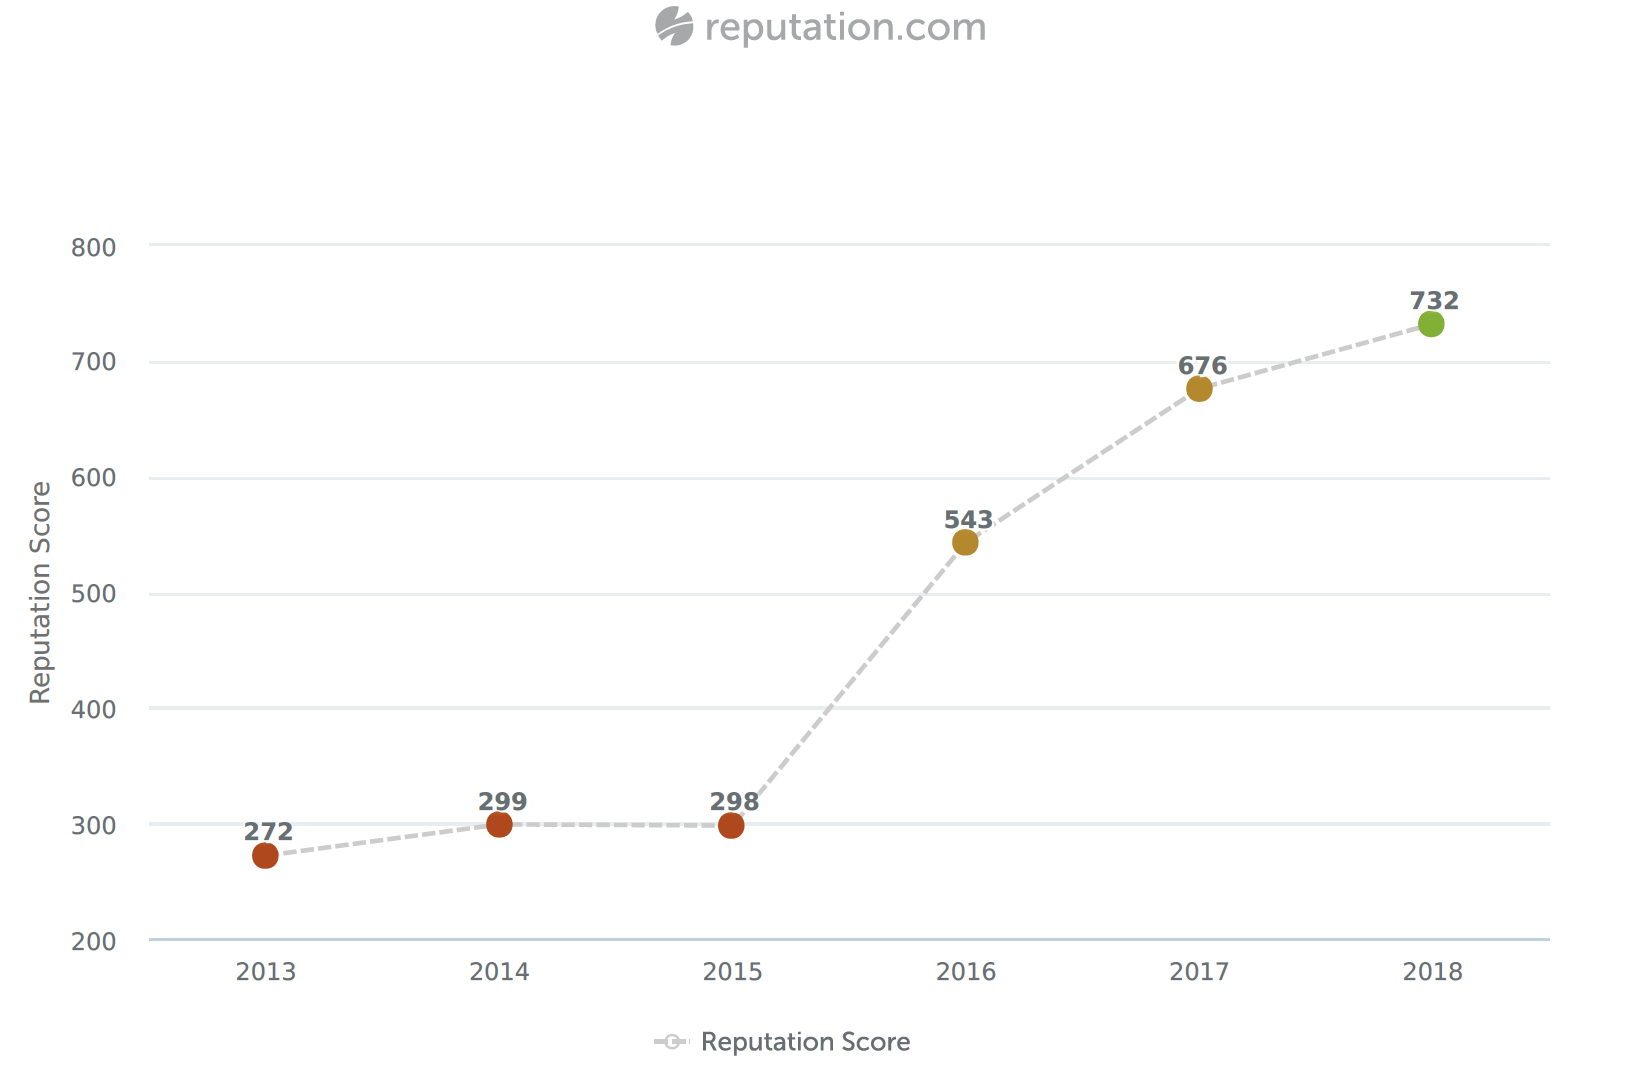 Middlekauff Ford Reputation Score Via Reputation.com, as of March 2018    NOTE: We did not use reputation review request software. Ford utilizes Reputation.com to accurately measure an average reputation score from around the web.